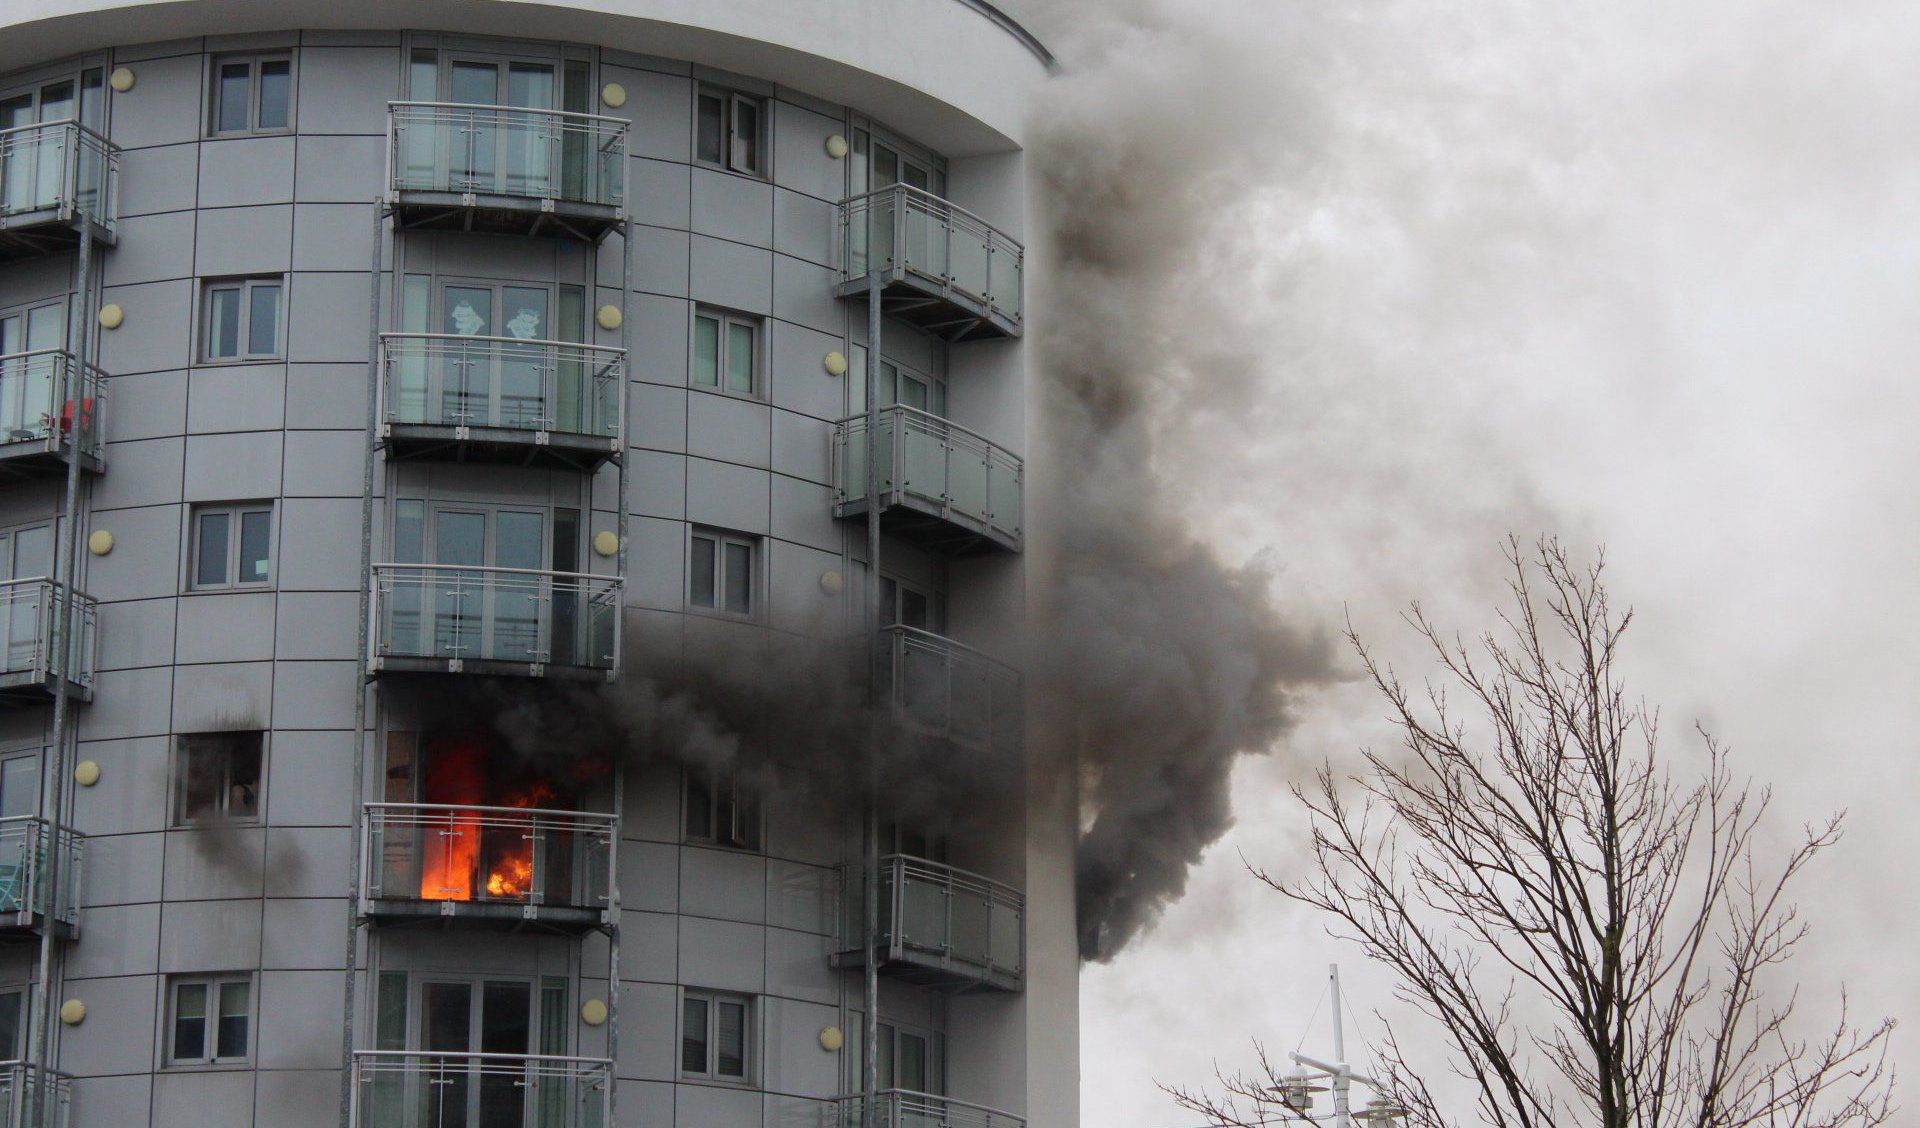 Pictured: The building on fireøøMore than 40 firefighters battled a fire that tore through an apartment block this afternoon.øøPolice closed roads in the Gunwharf Quays area of Portsmouth, Hants, after eyewitnesses saw smoke billowing from a fourth floor flat above the Tesco Express store.øøA spokesman for Hampshire Fire and Rescue Service said that nine fire engines are currently in attendance, with around 45 firefighters attempting to put out the flames.  SEE OUR COPY MORE DETAILS.  Please byline: Emma Kane/Solent News © Emma Kane/Solent News & Photo Agency UK +44 (0) 2380 458800